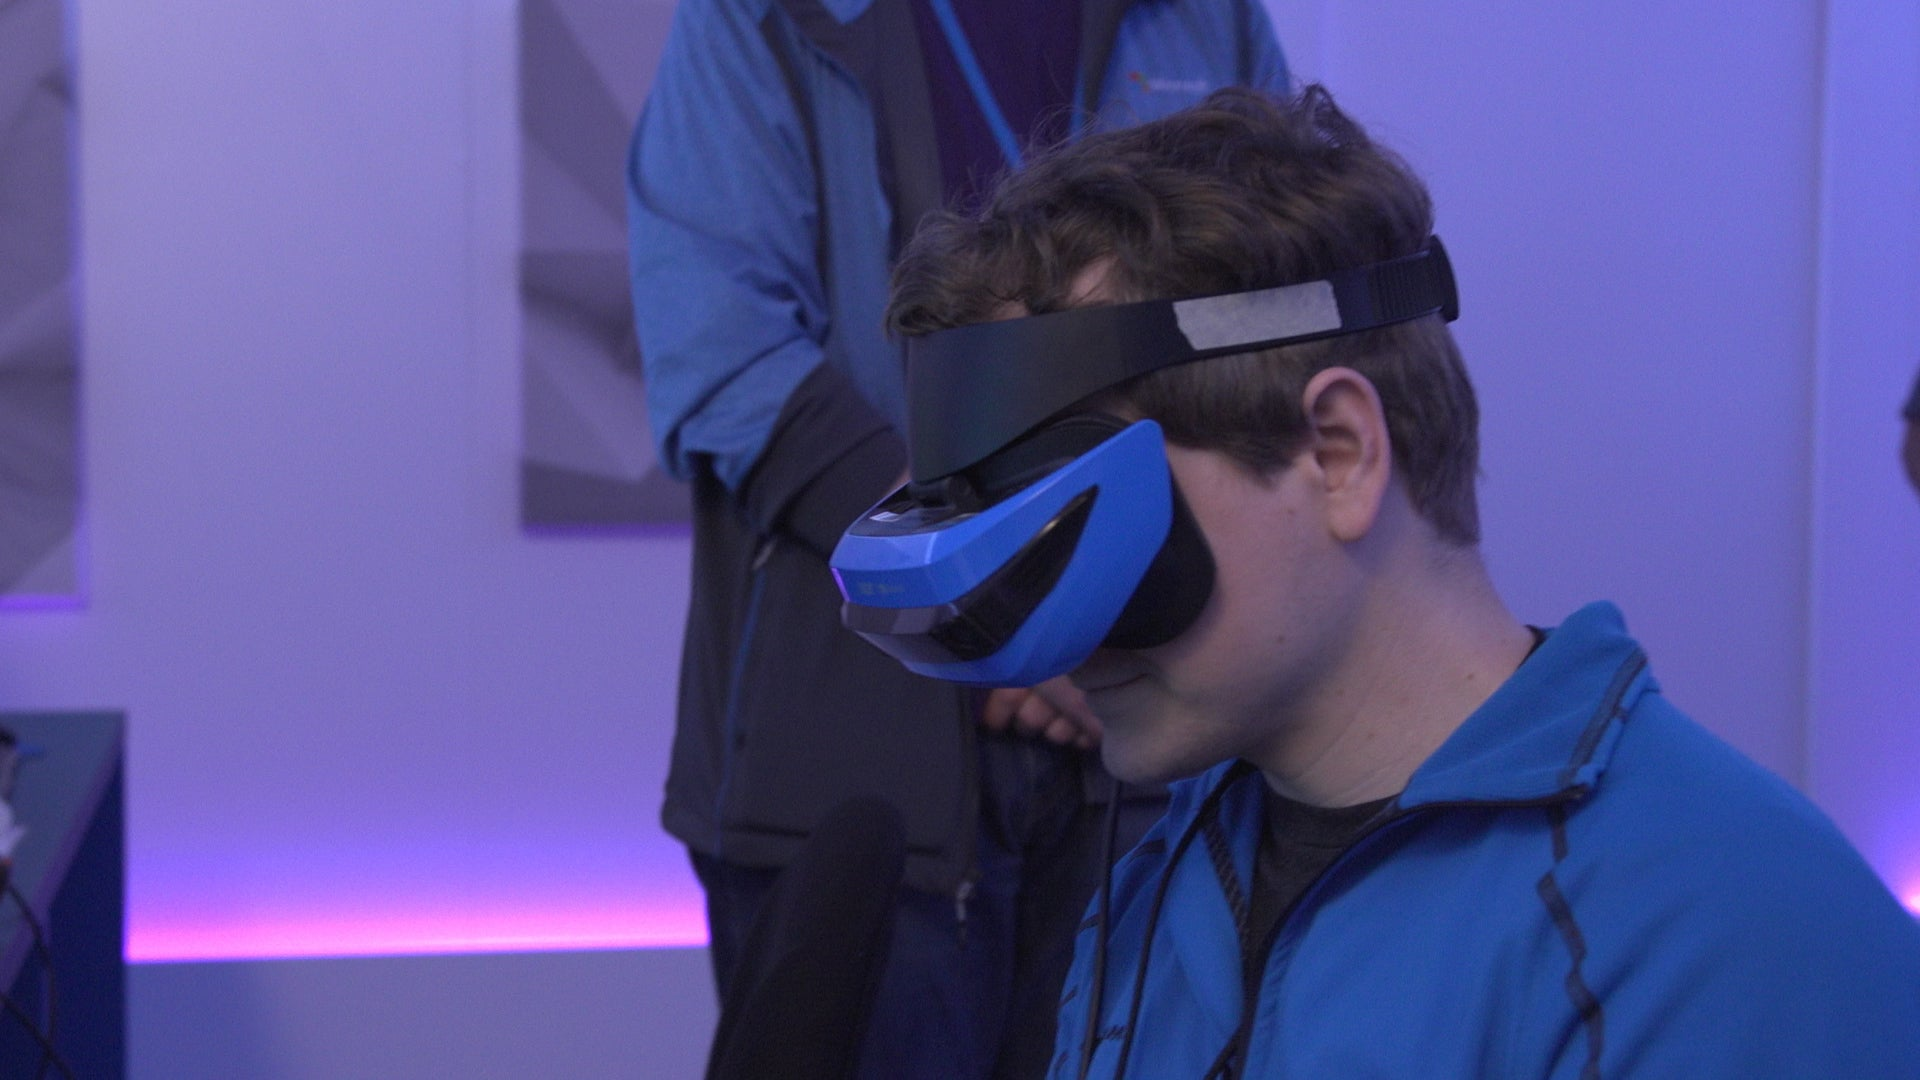 Man wearing the Windows based Acer Mixed Reality headset